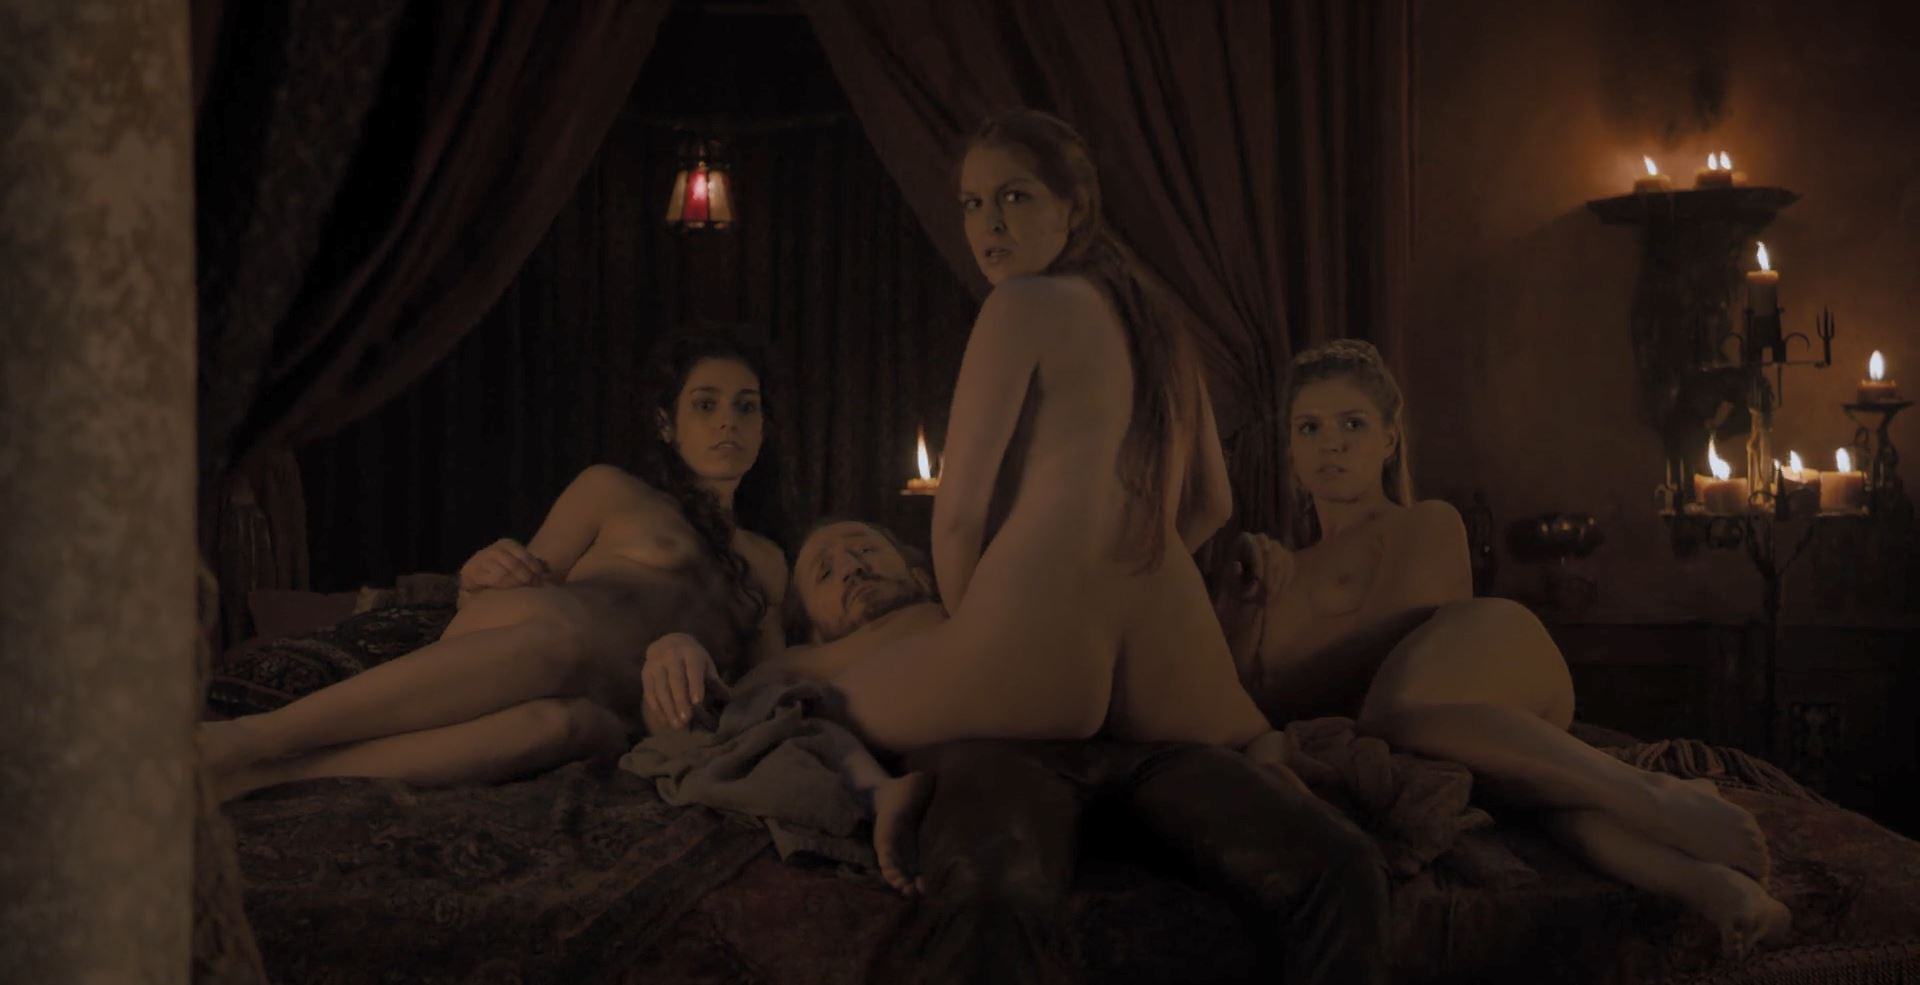 Game of Thrones S08E01 Winterfell Review - Ser Bronn of the Blackwater fucking three nude girls